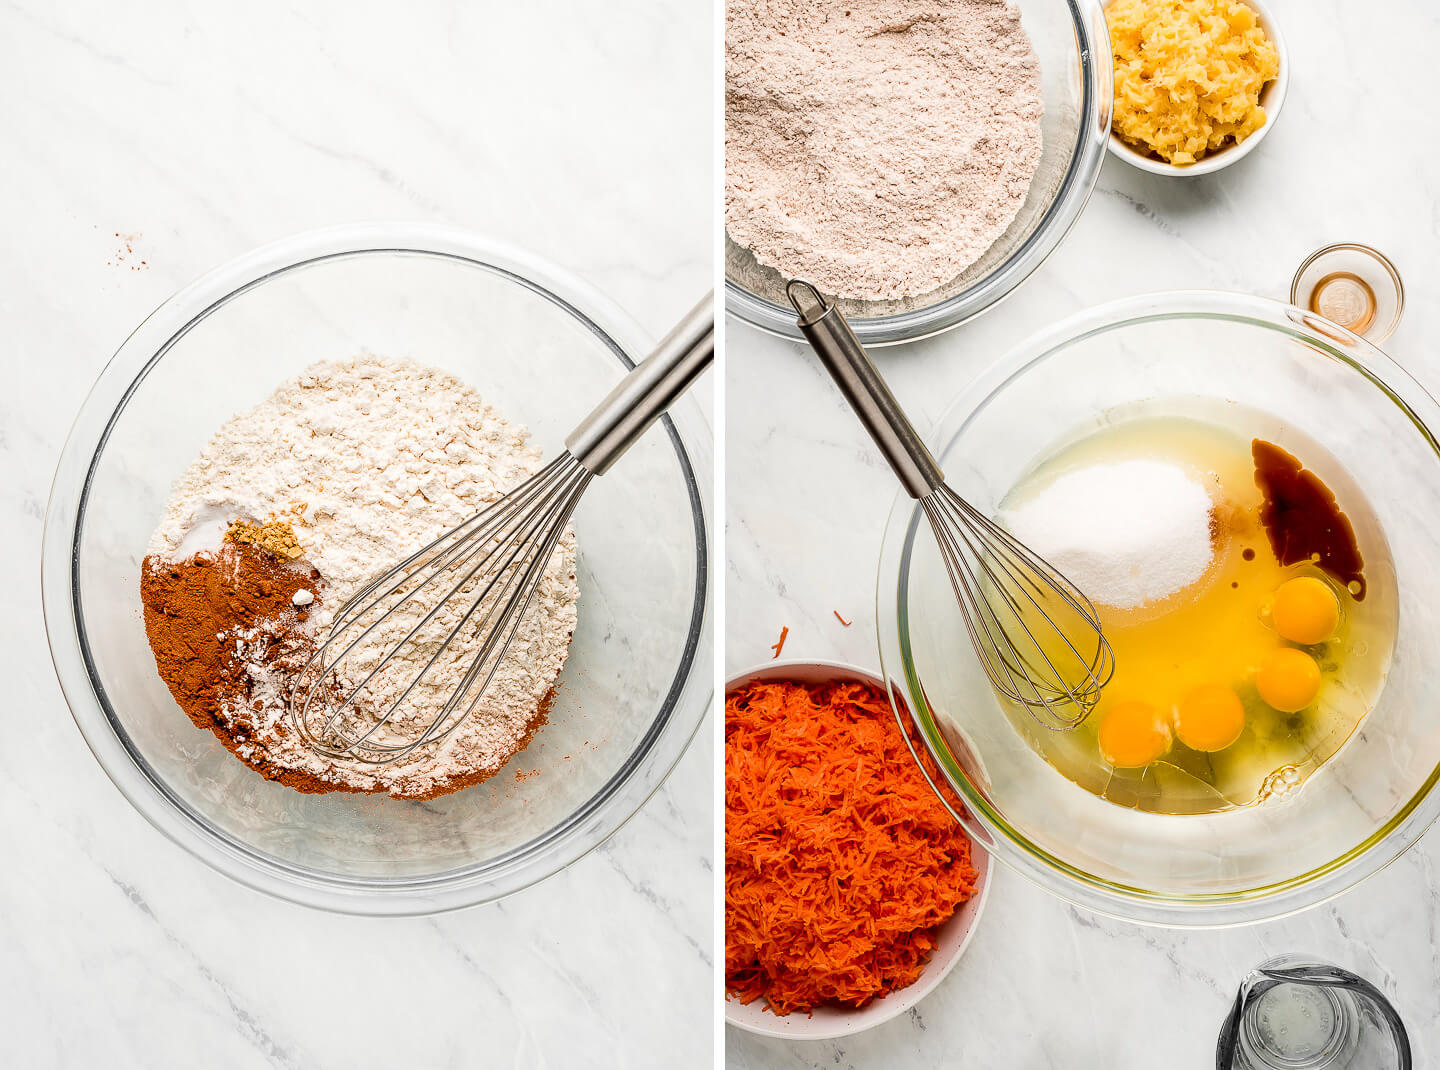 Diptych- Dry ingredients in a bowl with a whisk; Wet ingredients with sugar in a bowl with pineapple, shredded carrots, and dry ingredients to the side.